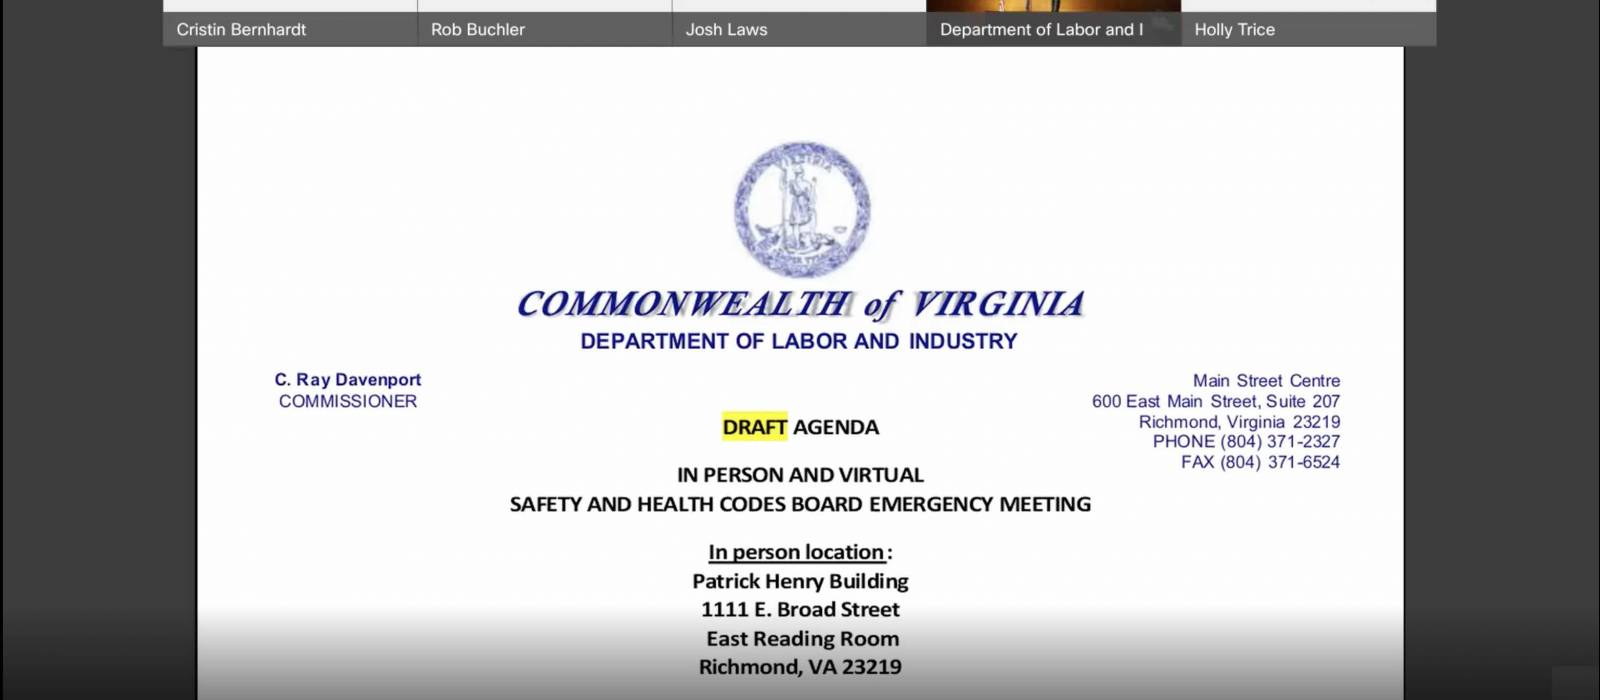 Virginia Health and Safety Codes Board Adopt Changes